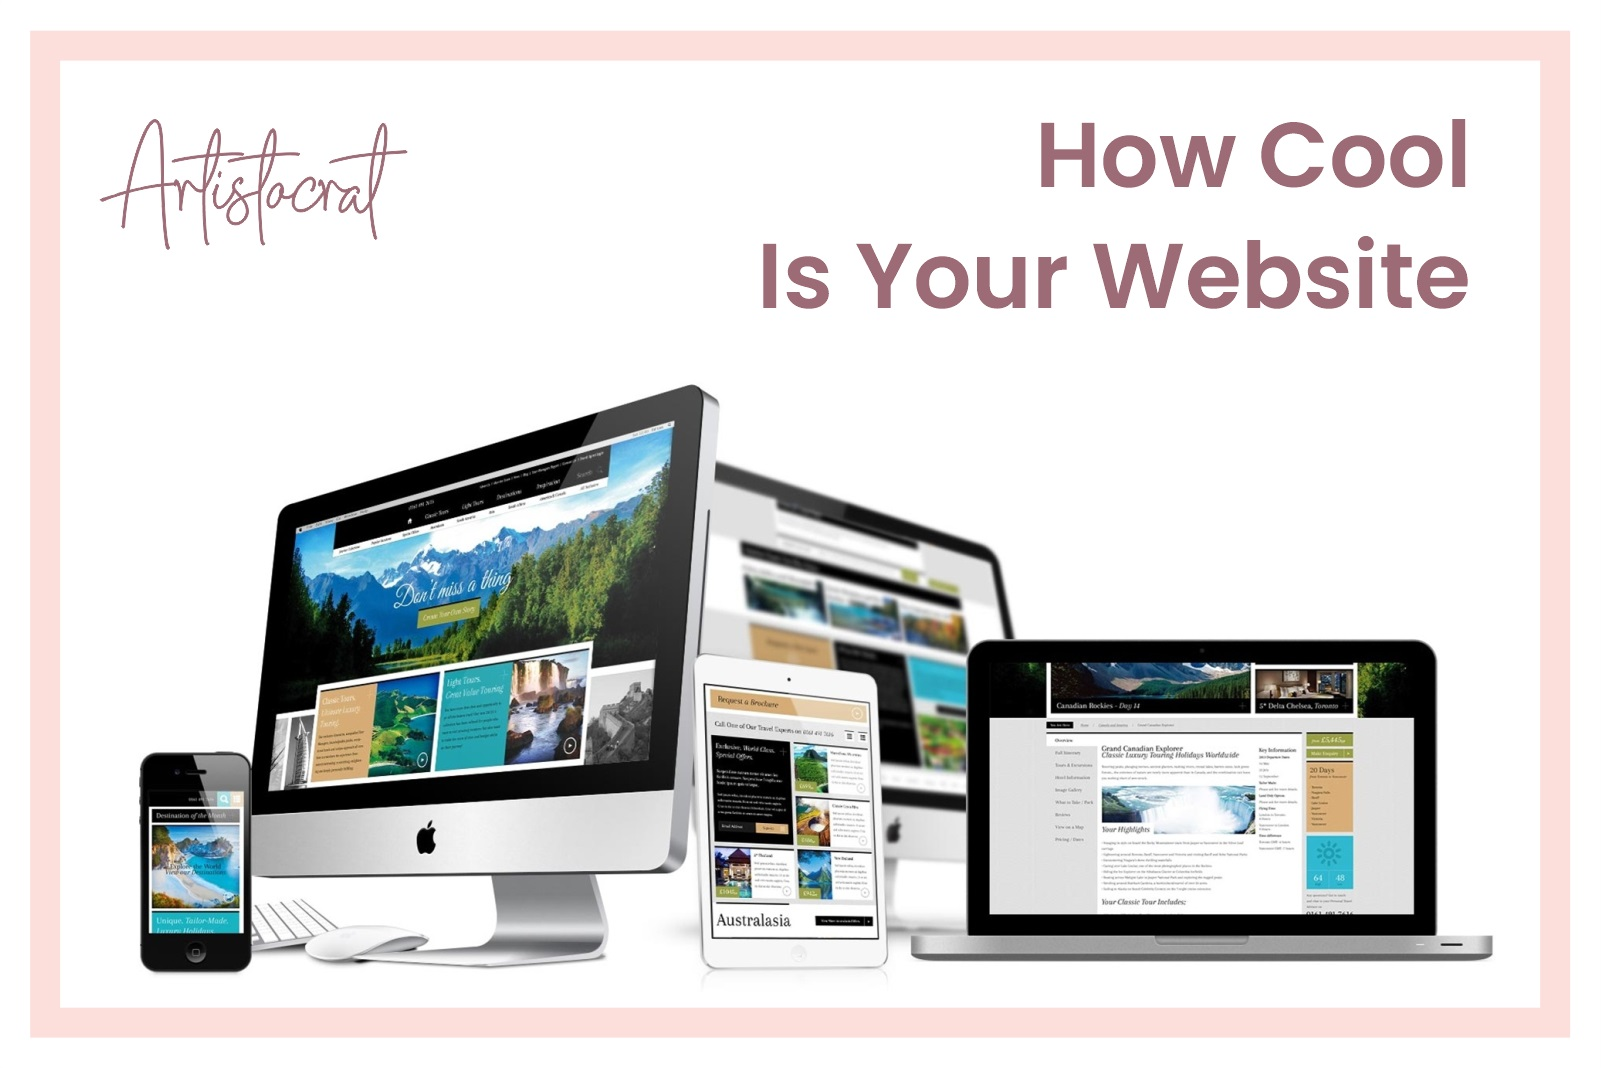 How Cool Is Your Website - Artistocrat Agency